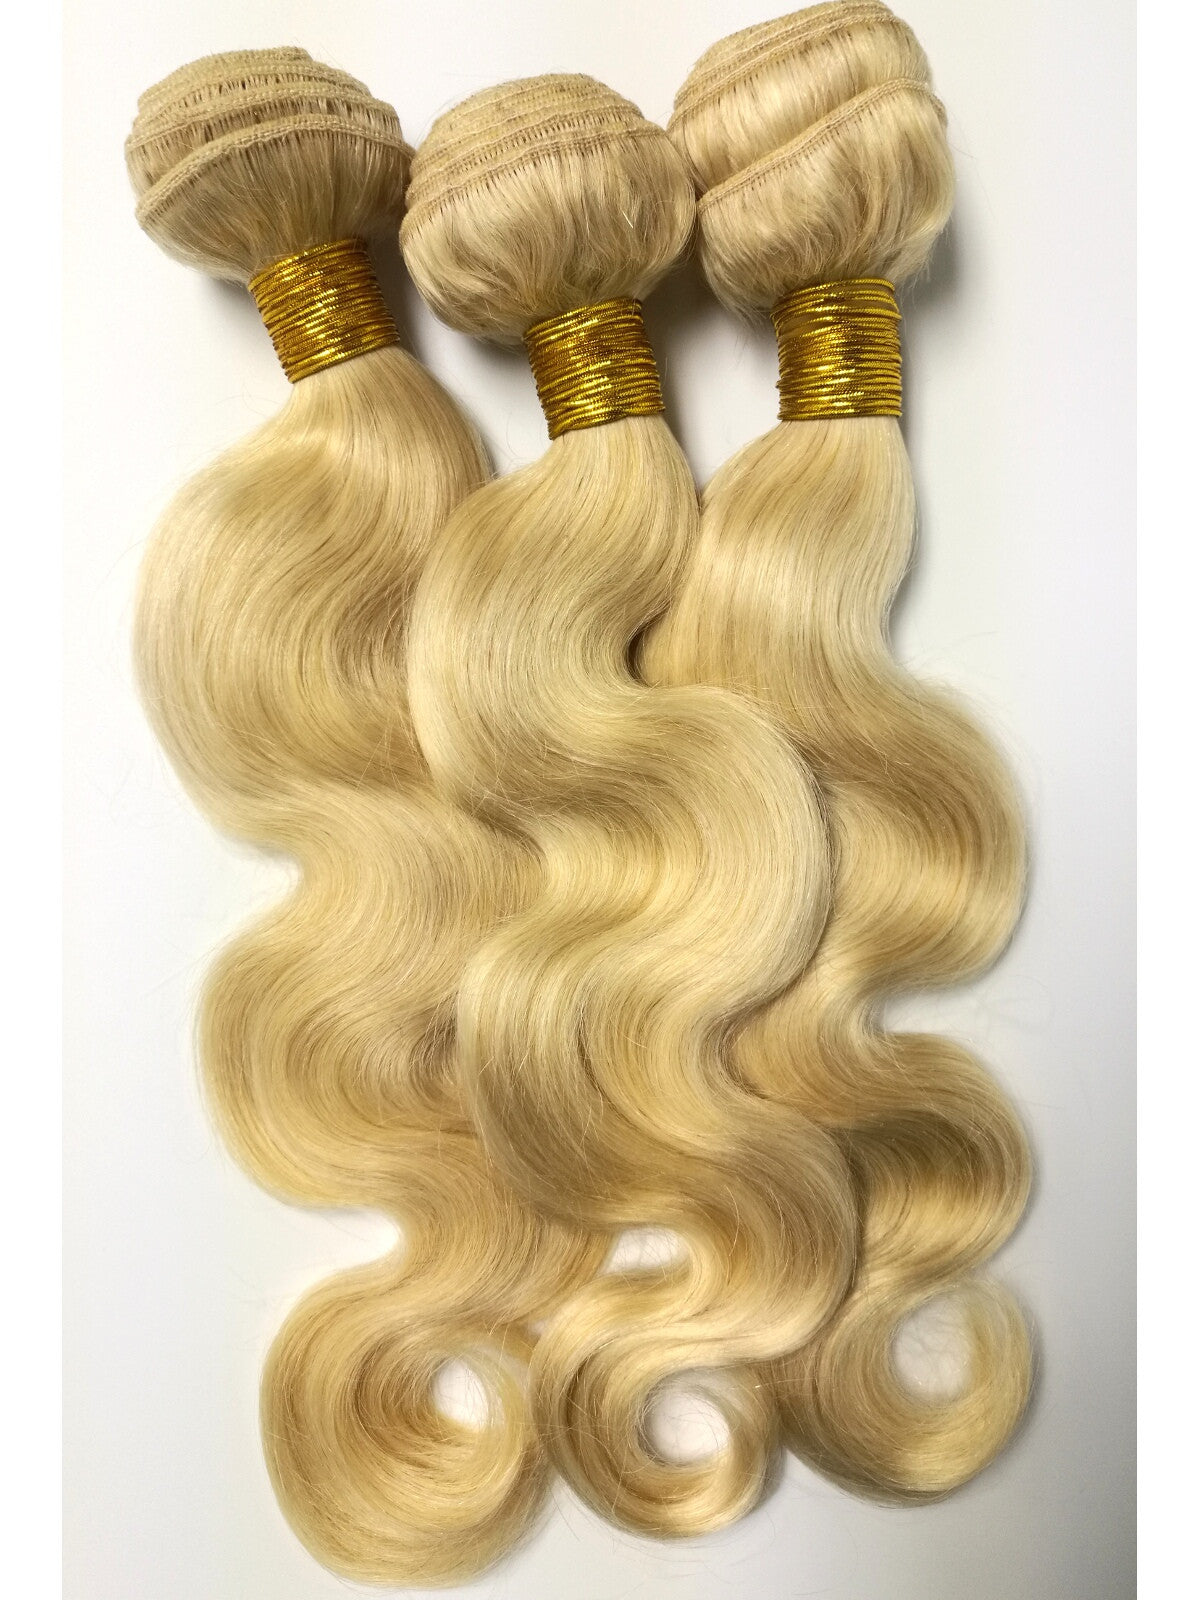 Blonde BODY WAVE - Euryale Virgin Hair